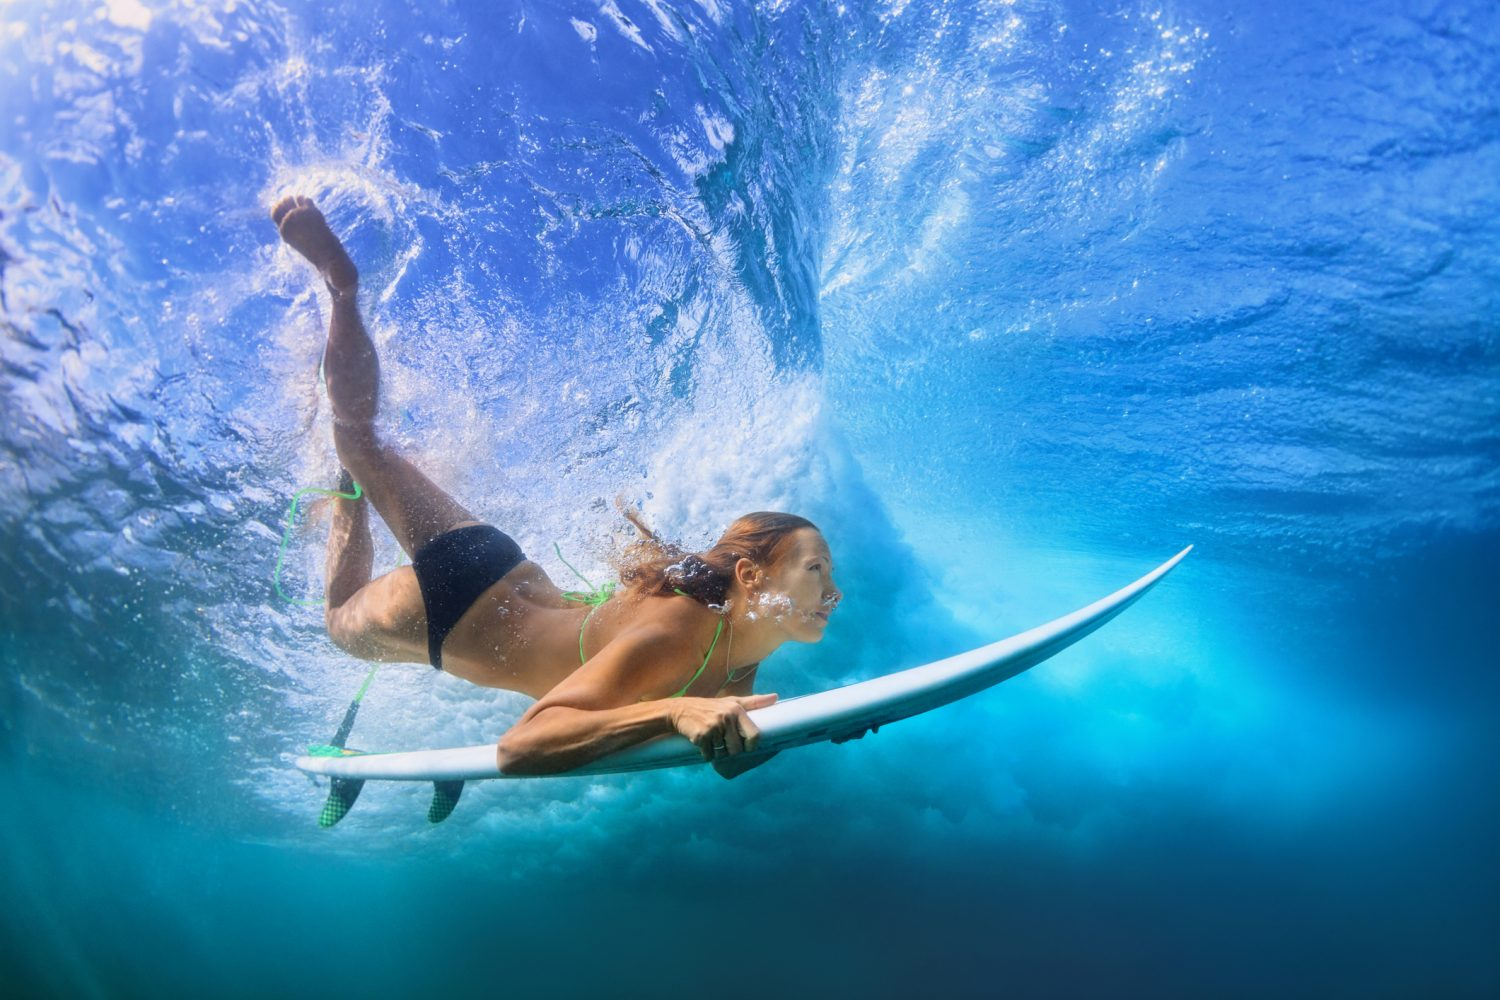 Beautiful surfer girl diving under water with surf board - things to do Maui